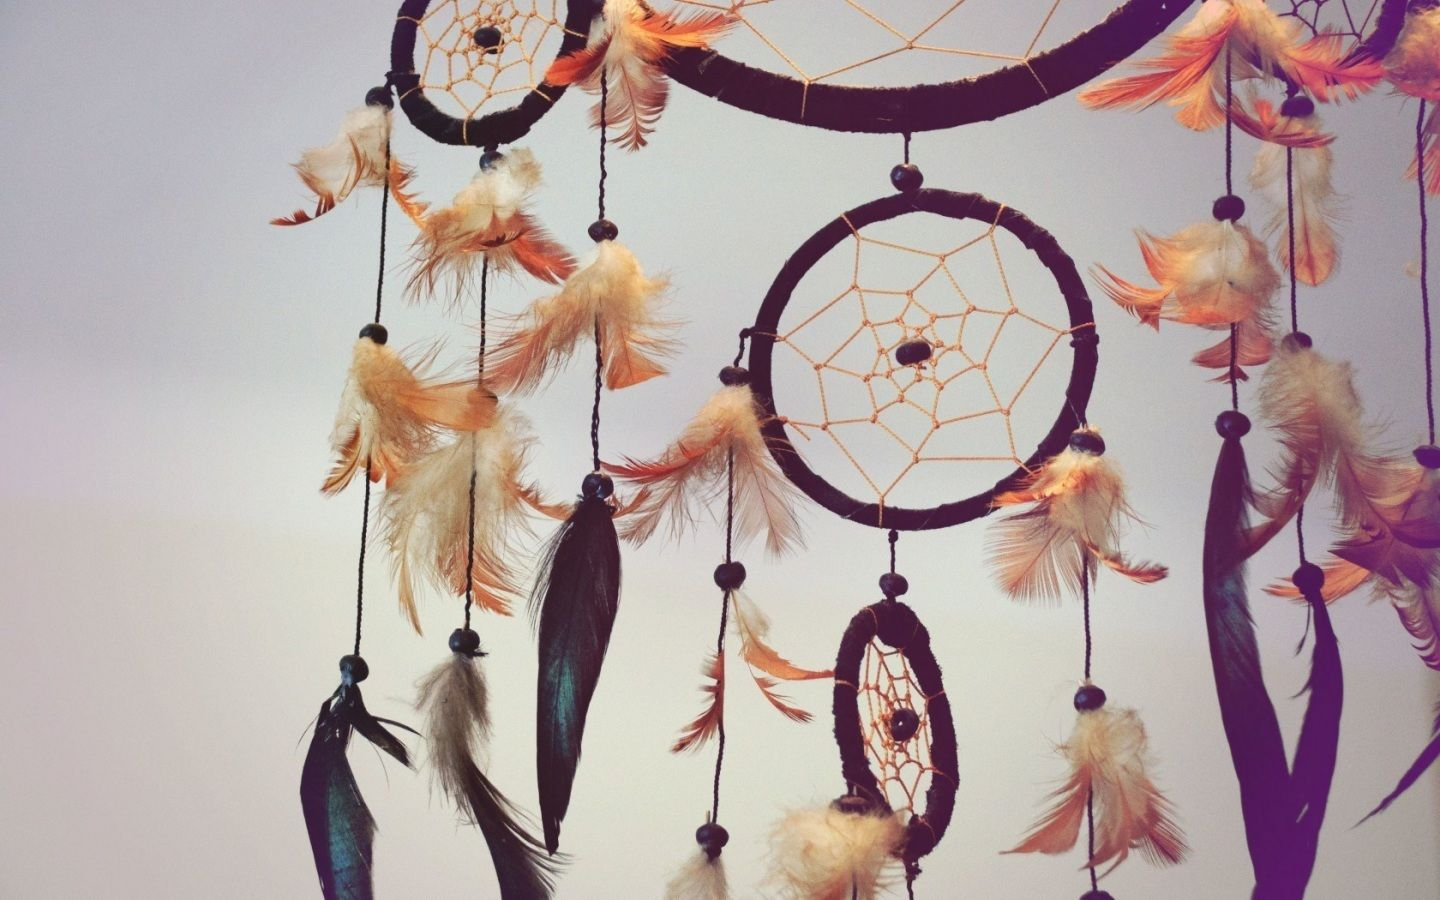 Pin By Jessica On Aesthetics Dreamcatcher